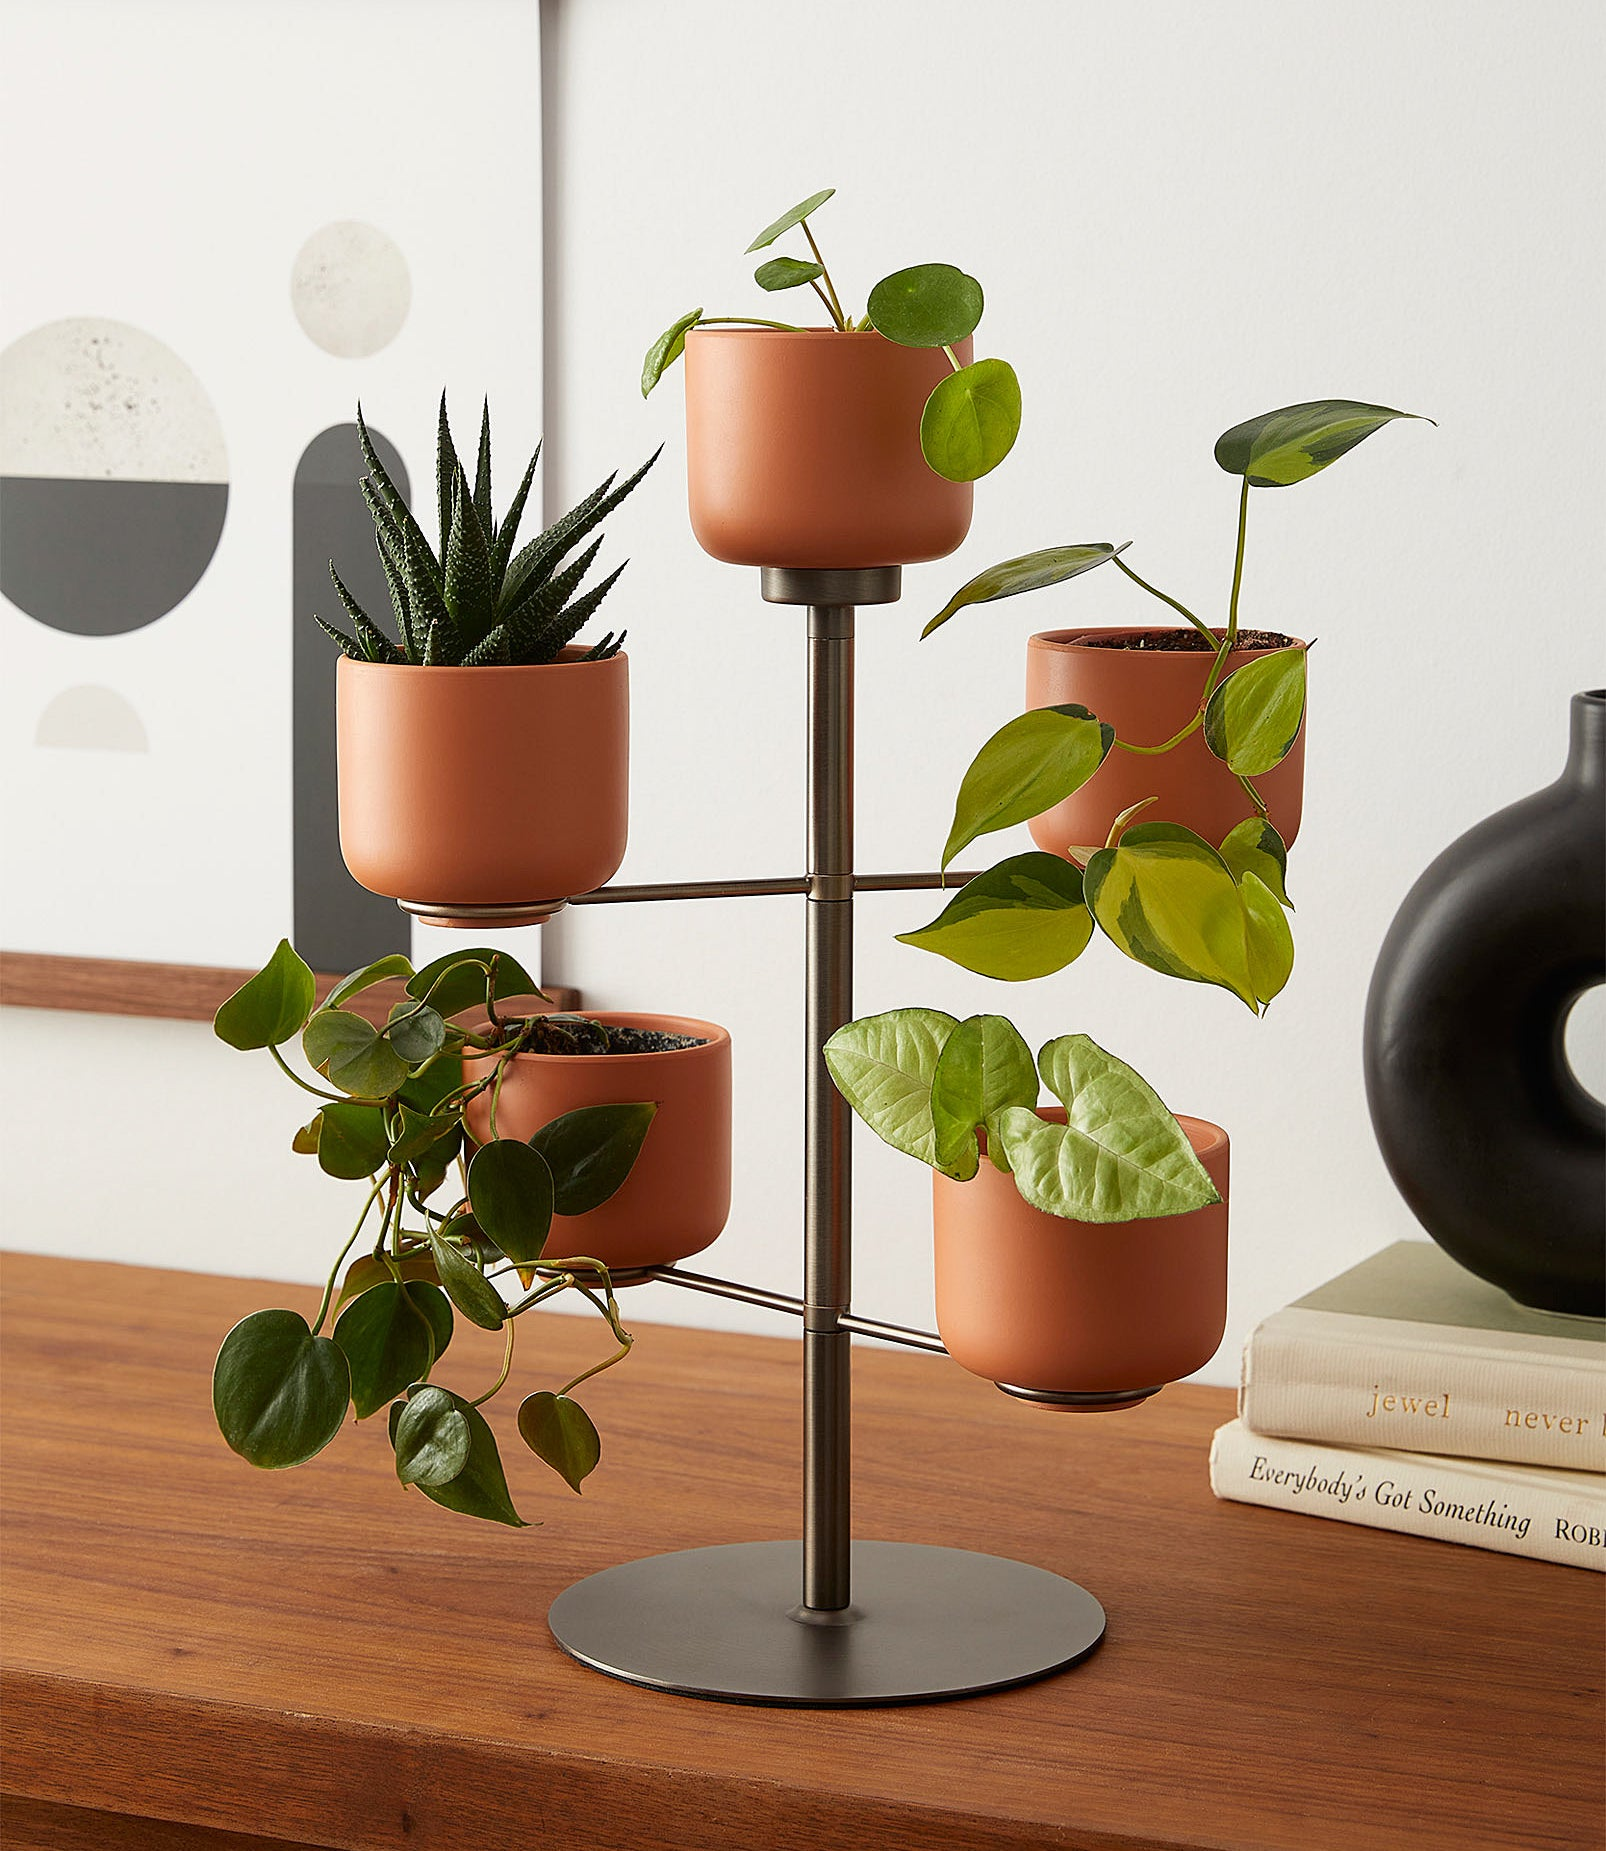 A plant stand with five rotating terracotter planters